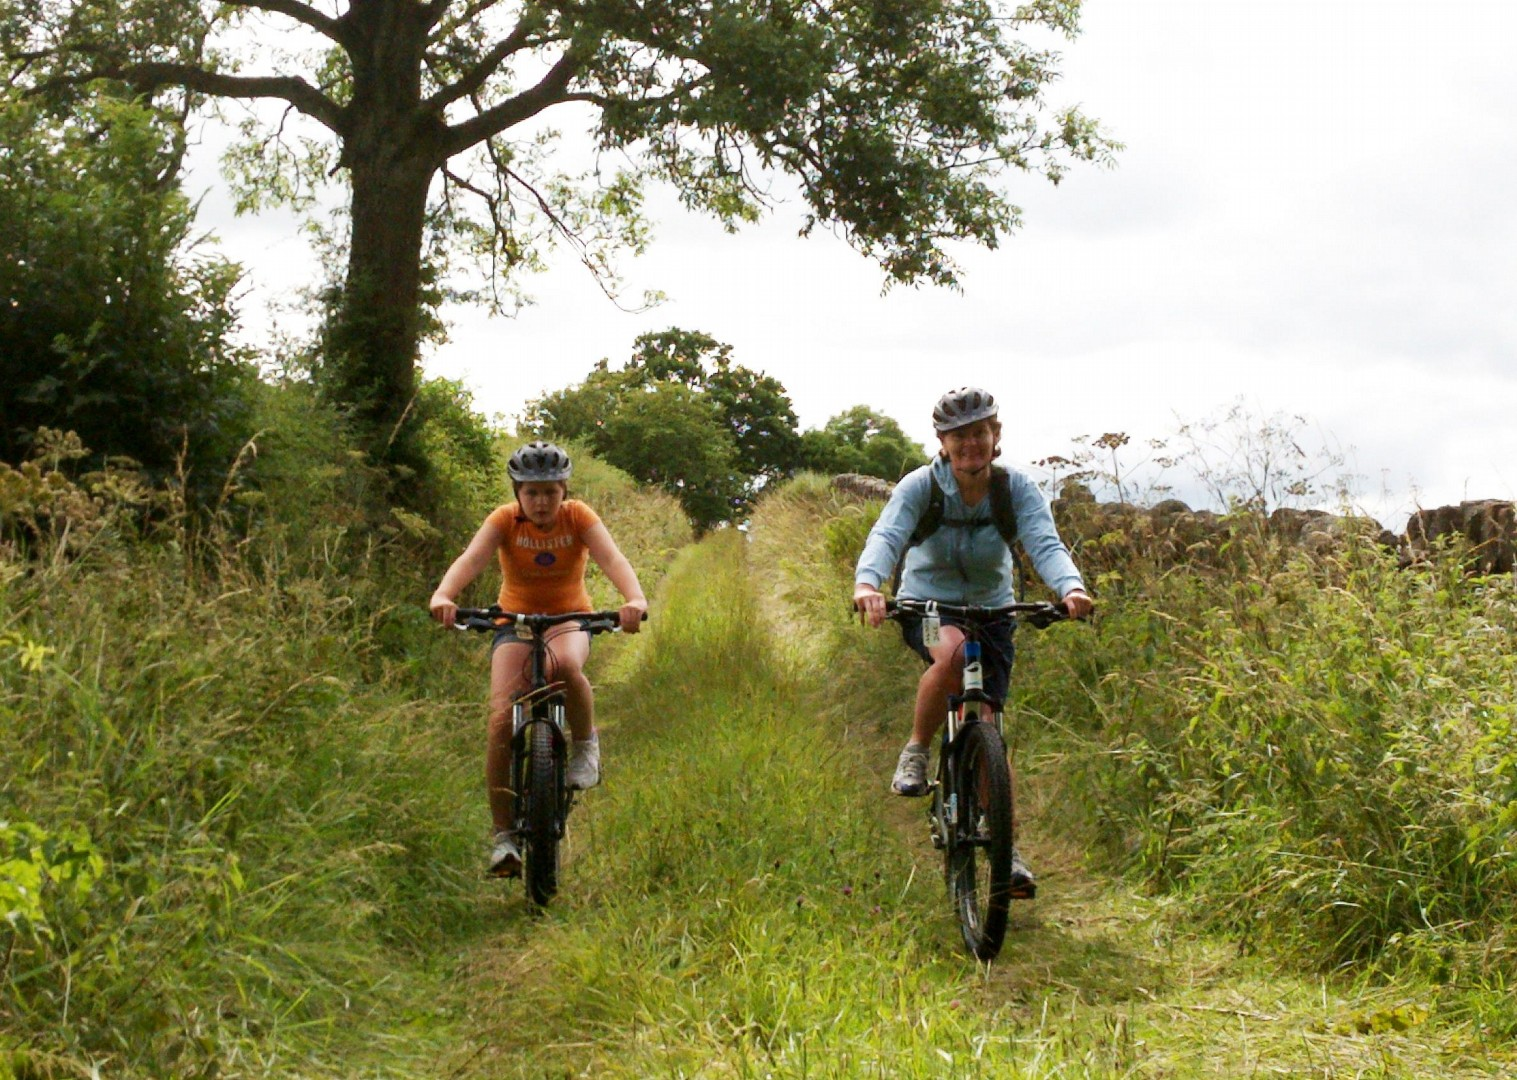 country-cycling-lake-district-guided-bike-skills.jpg - UK - Lake District - Guided Family Bike Skills - Family Cycling